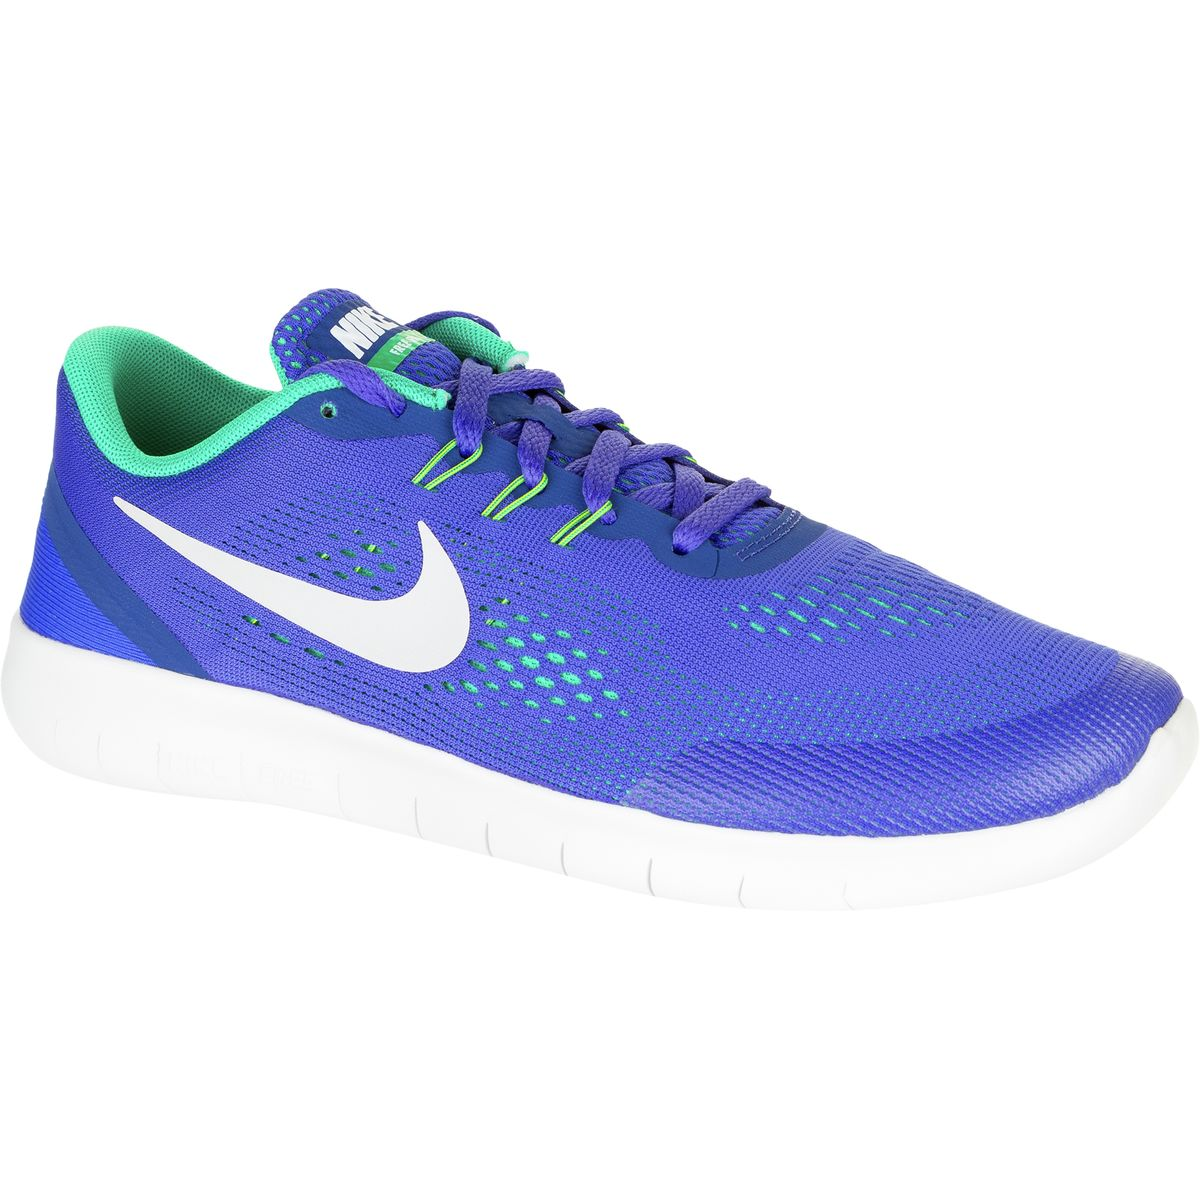 Nike shoes coupon code